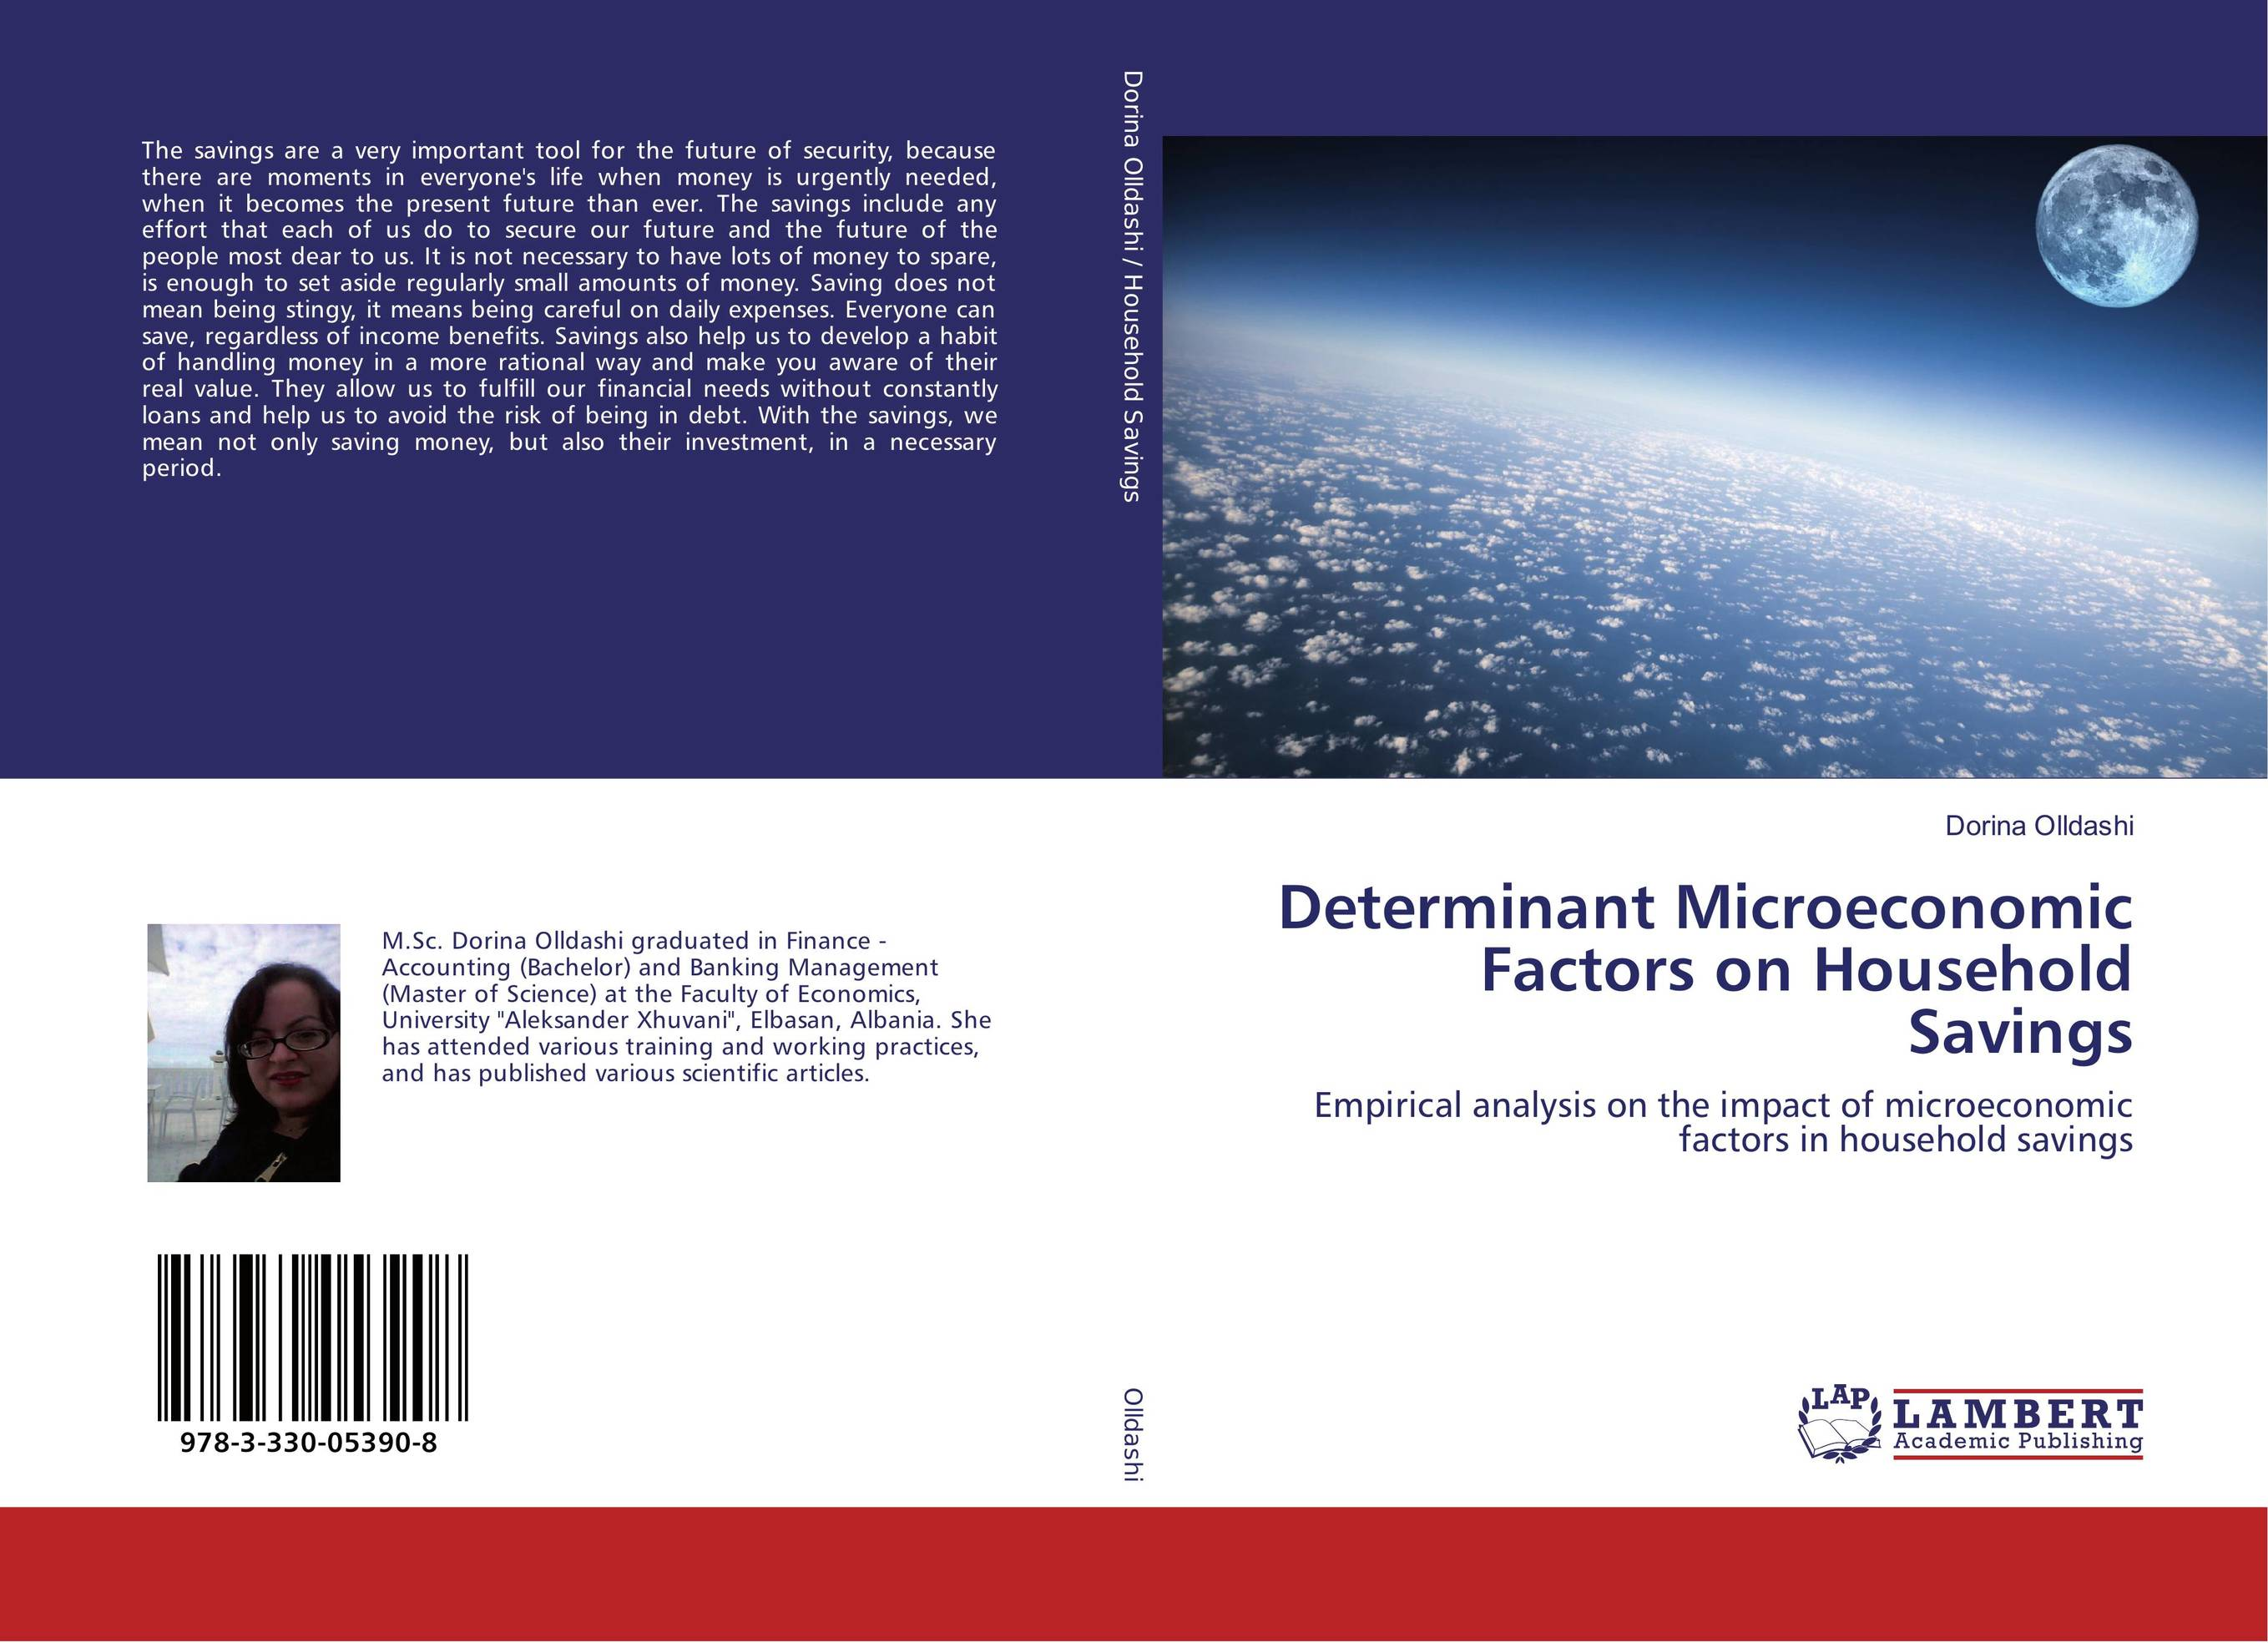 microeconomic issues and their impacts and Microeconomics is the study of the economic actions of individuals and small groups of individuals the determination of equilibrium output of the firm or industry, the wage of a particular type of labour, the price of a particular commodity like rice, tea, or car are some of the fields of microeconomic theory.